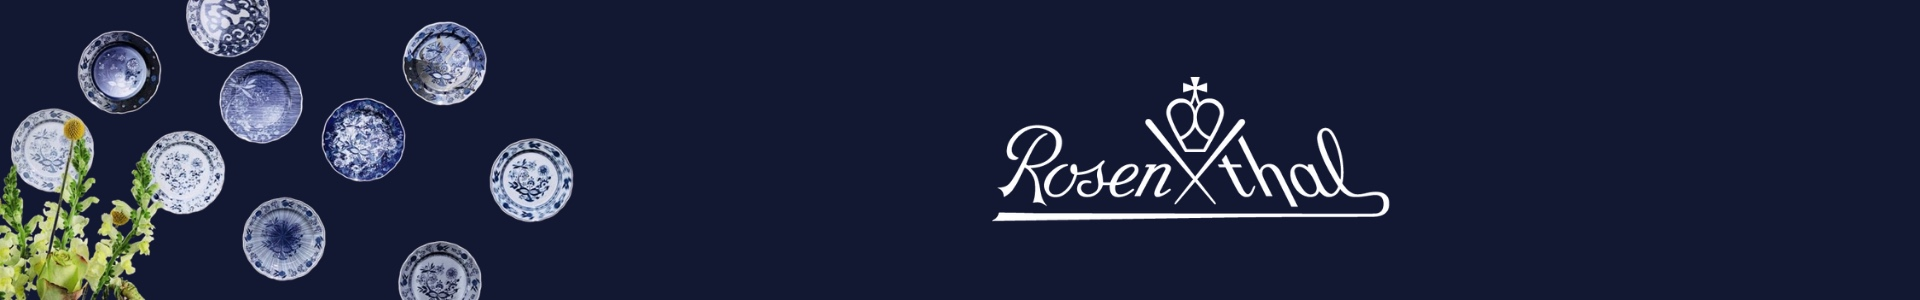 banner rosenthal shop online code discount sale codice sconto